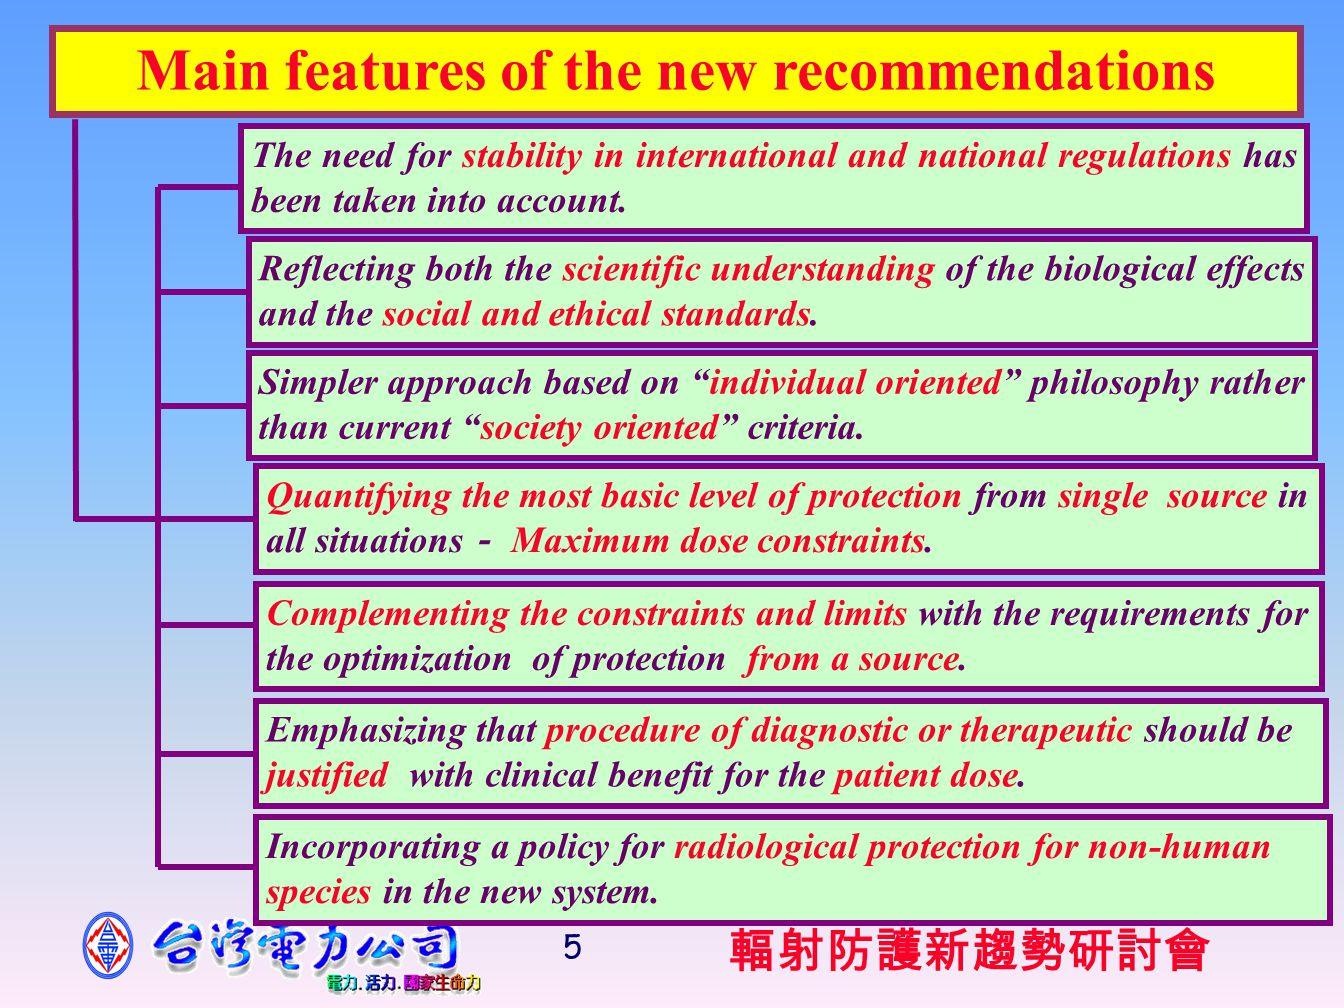 輻射防護新趨勢研討會 5 Main features of the new recommendations Complementing the constraints and limits with the requirements for the optimization of protection from a source.